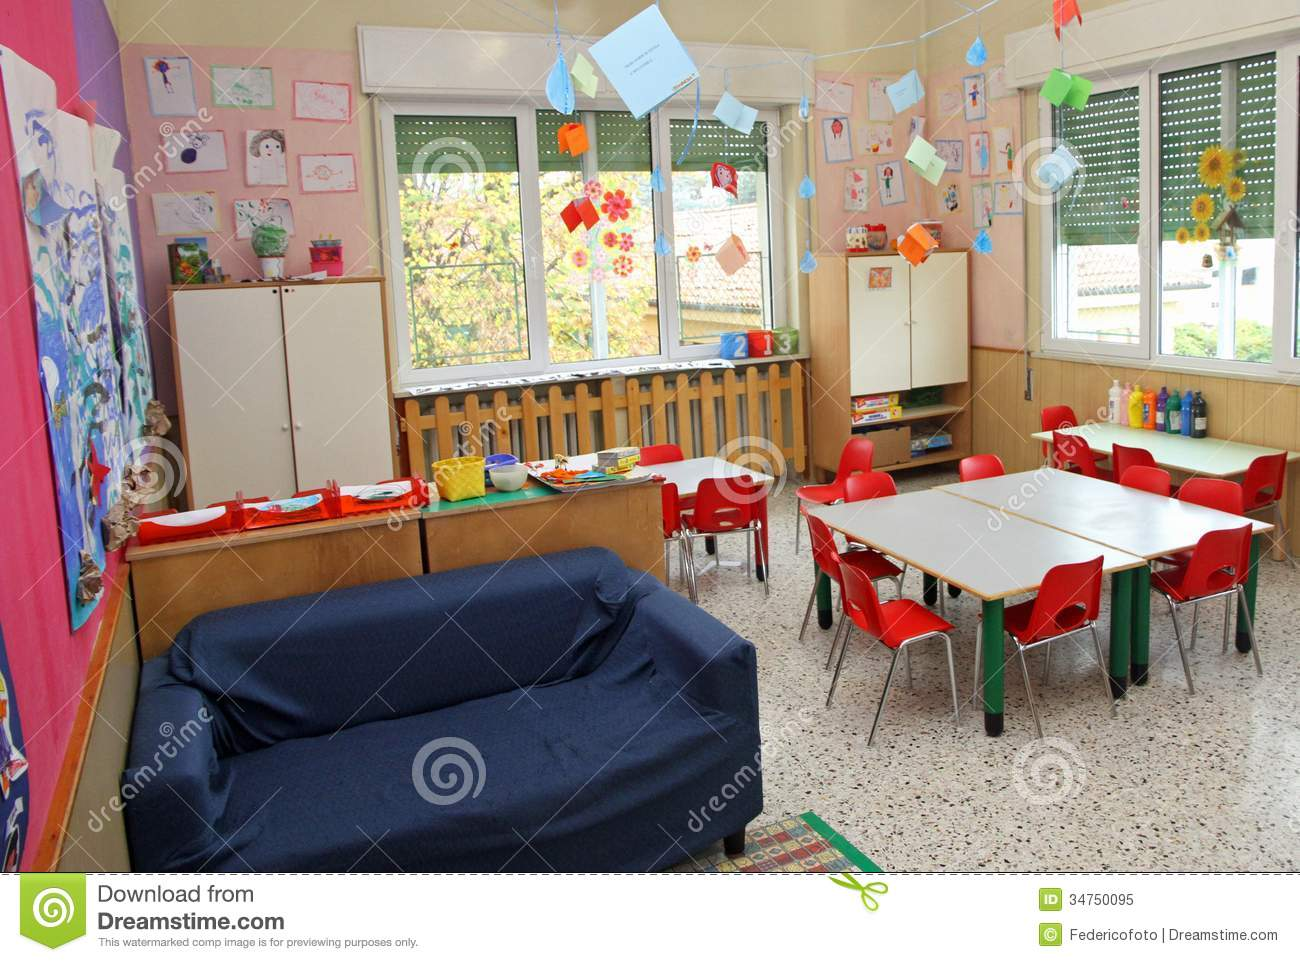 classroom in a kindergarten with tables and chairs and blue sofa stock image image 34750095. Black Bedroom Furniture Sets. Home Design Ideas